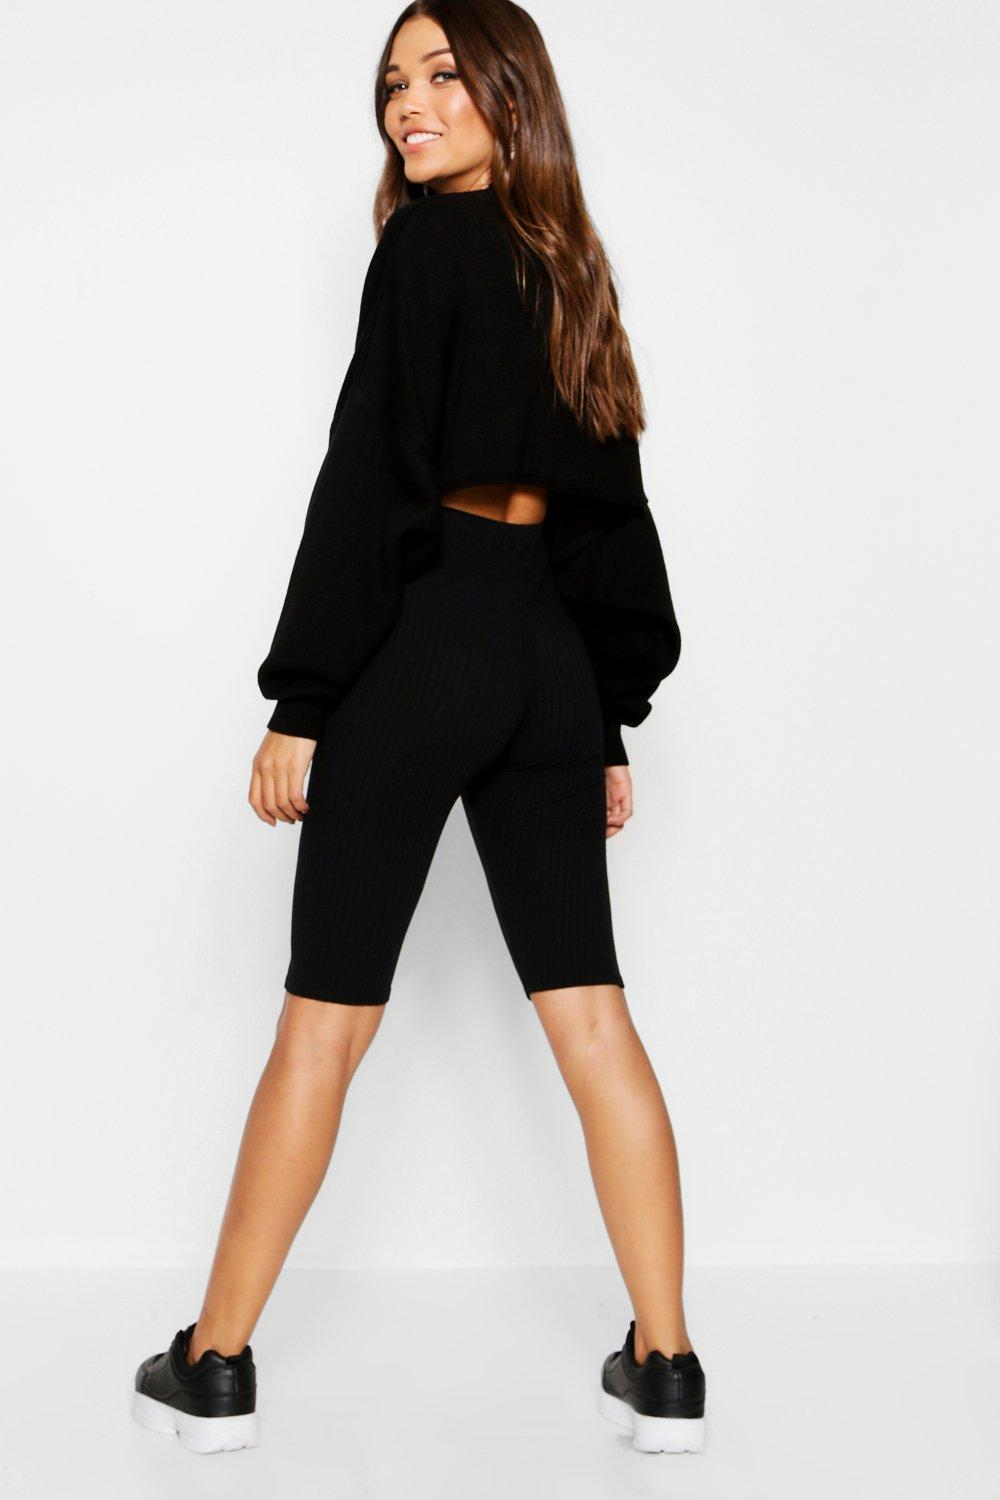 black Short Longline Knit Rib Cycling qpXZBnH